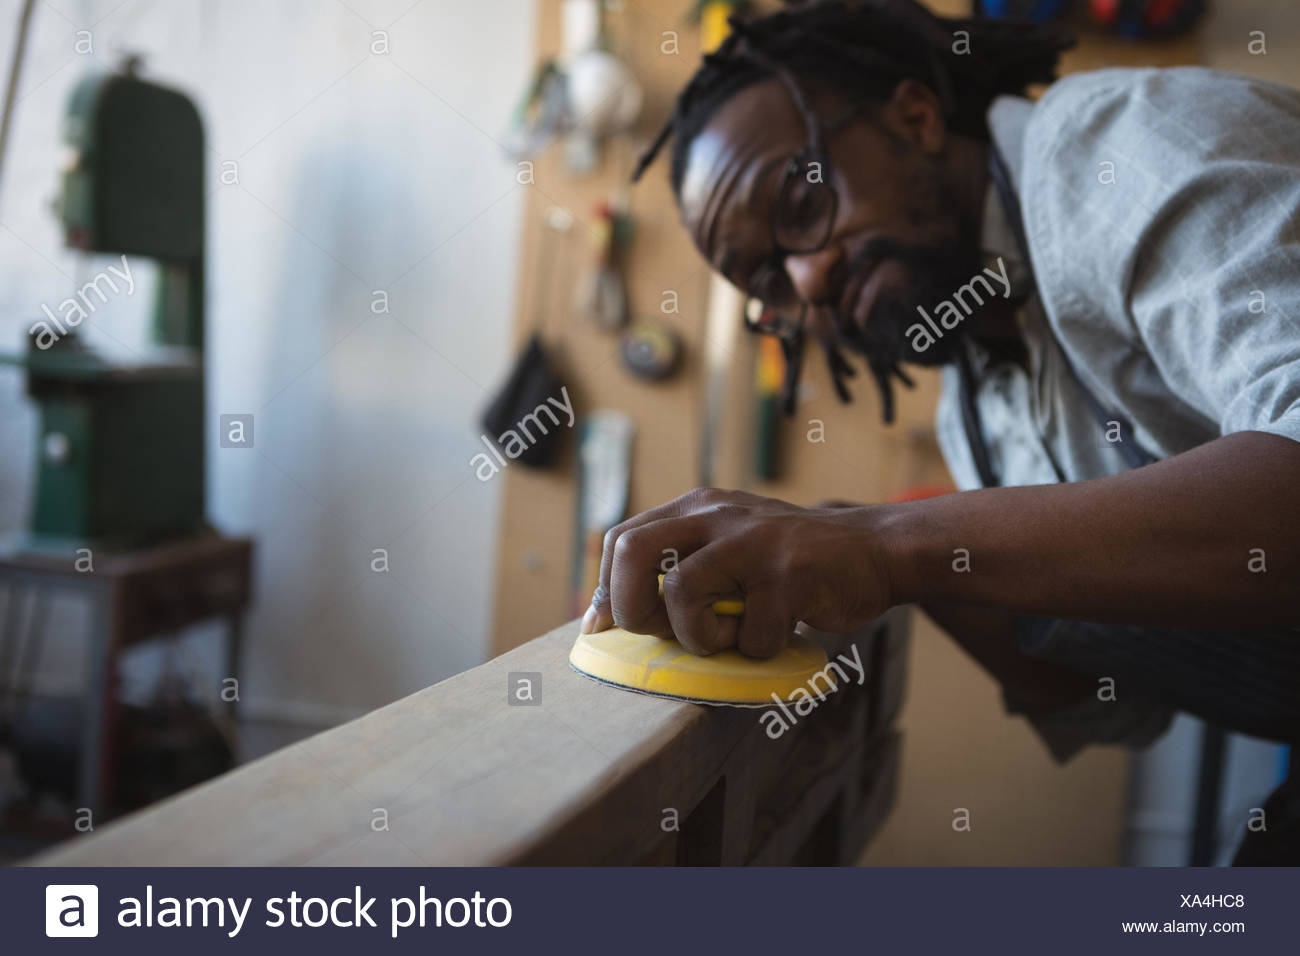 Carpenter leveling wood with work tool - Stock Image